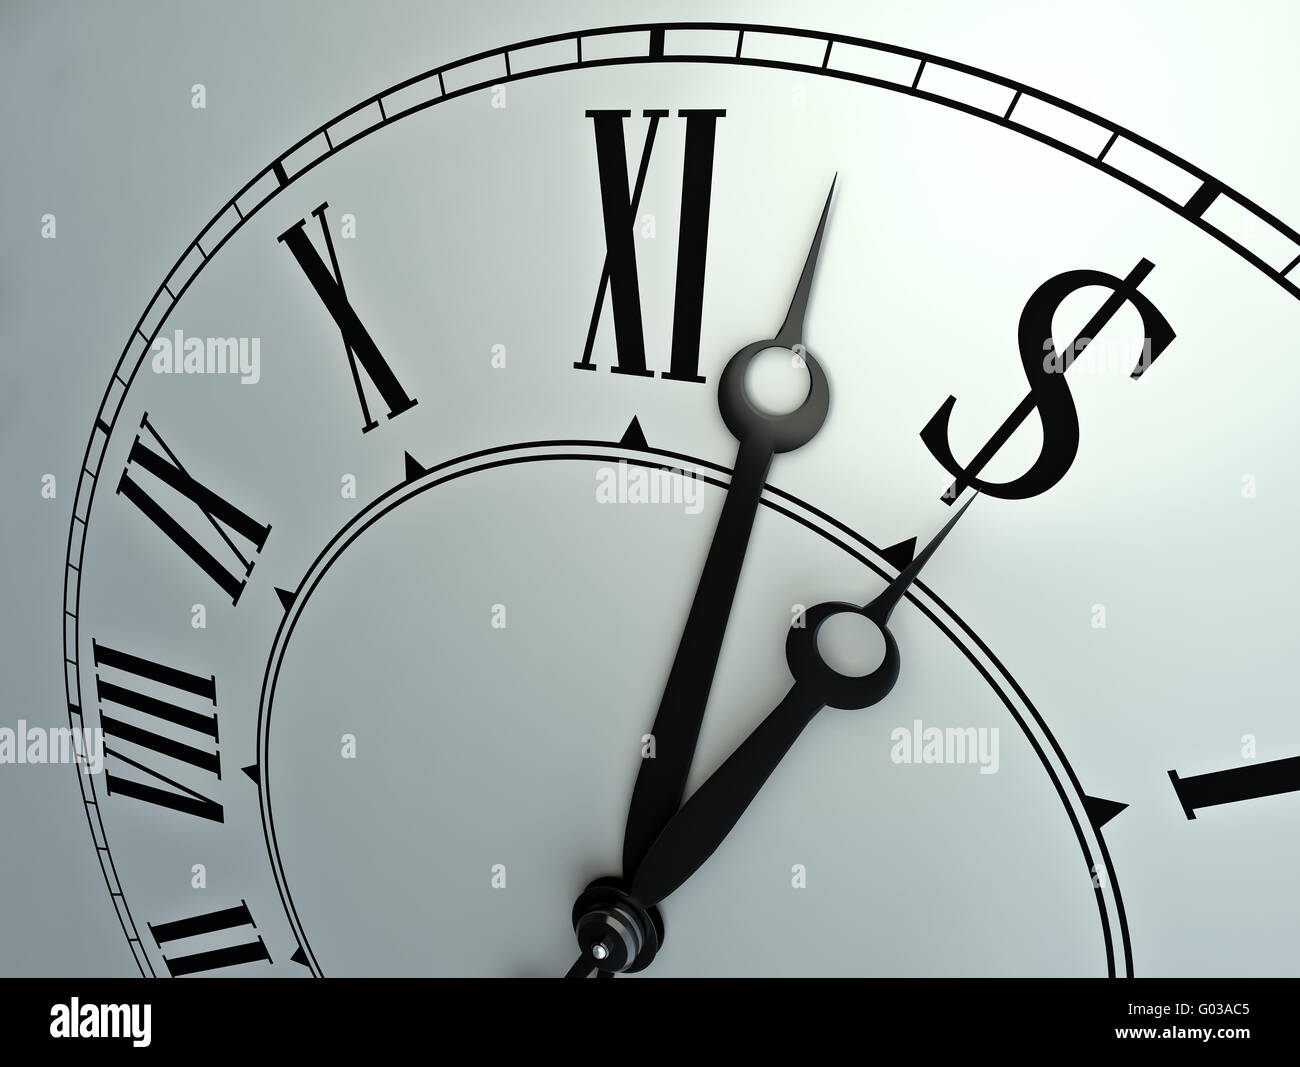 Time is money - financial concept illustration with a clock - Stock Image